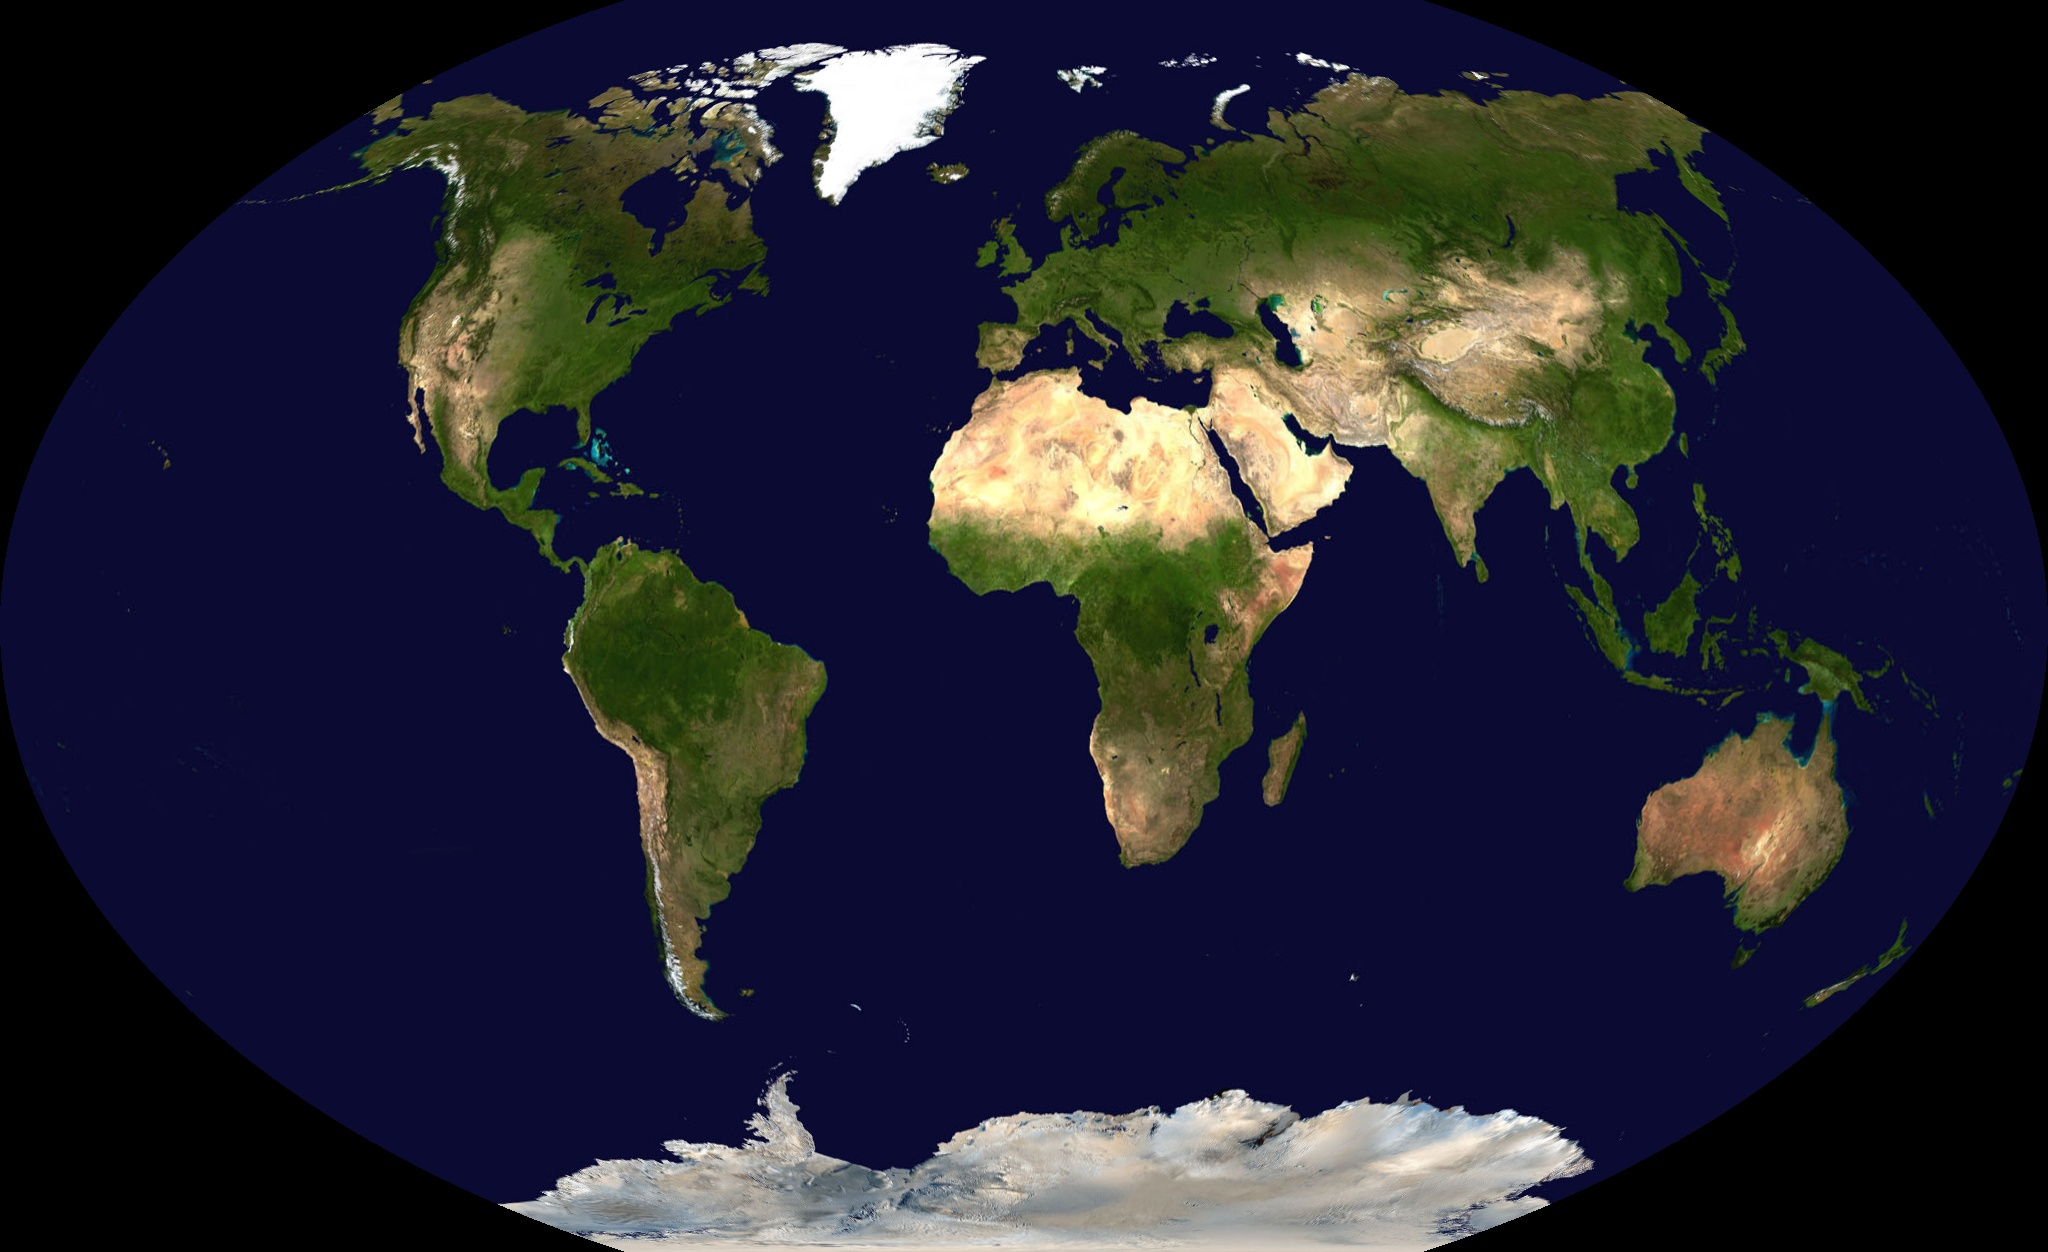 Curvature in map projections he has also worked with rich on map projections and was good enough to provide his map reprojection software gumiabroncs Images